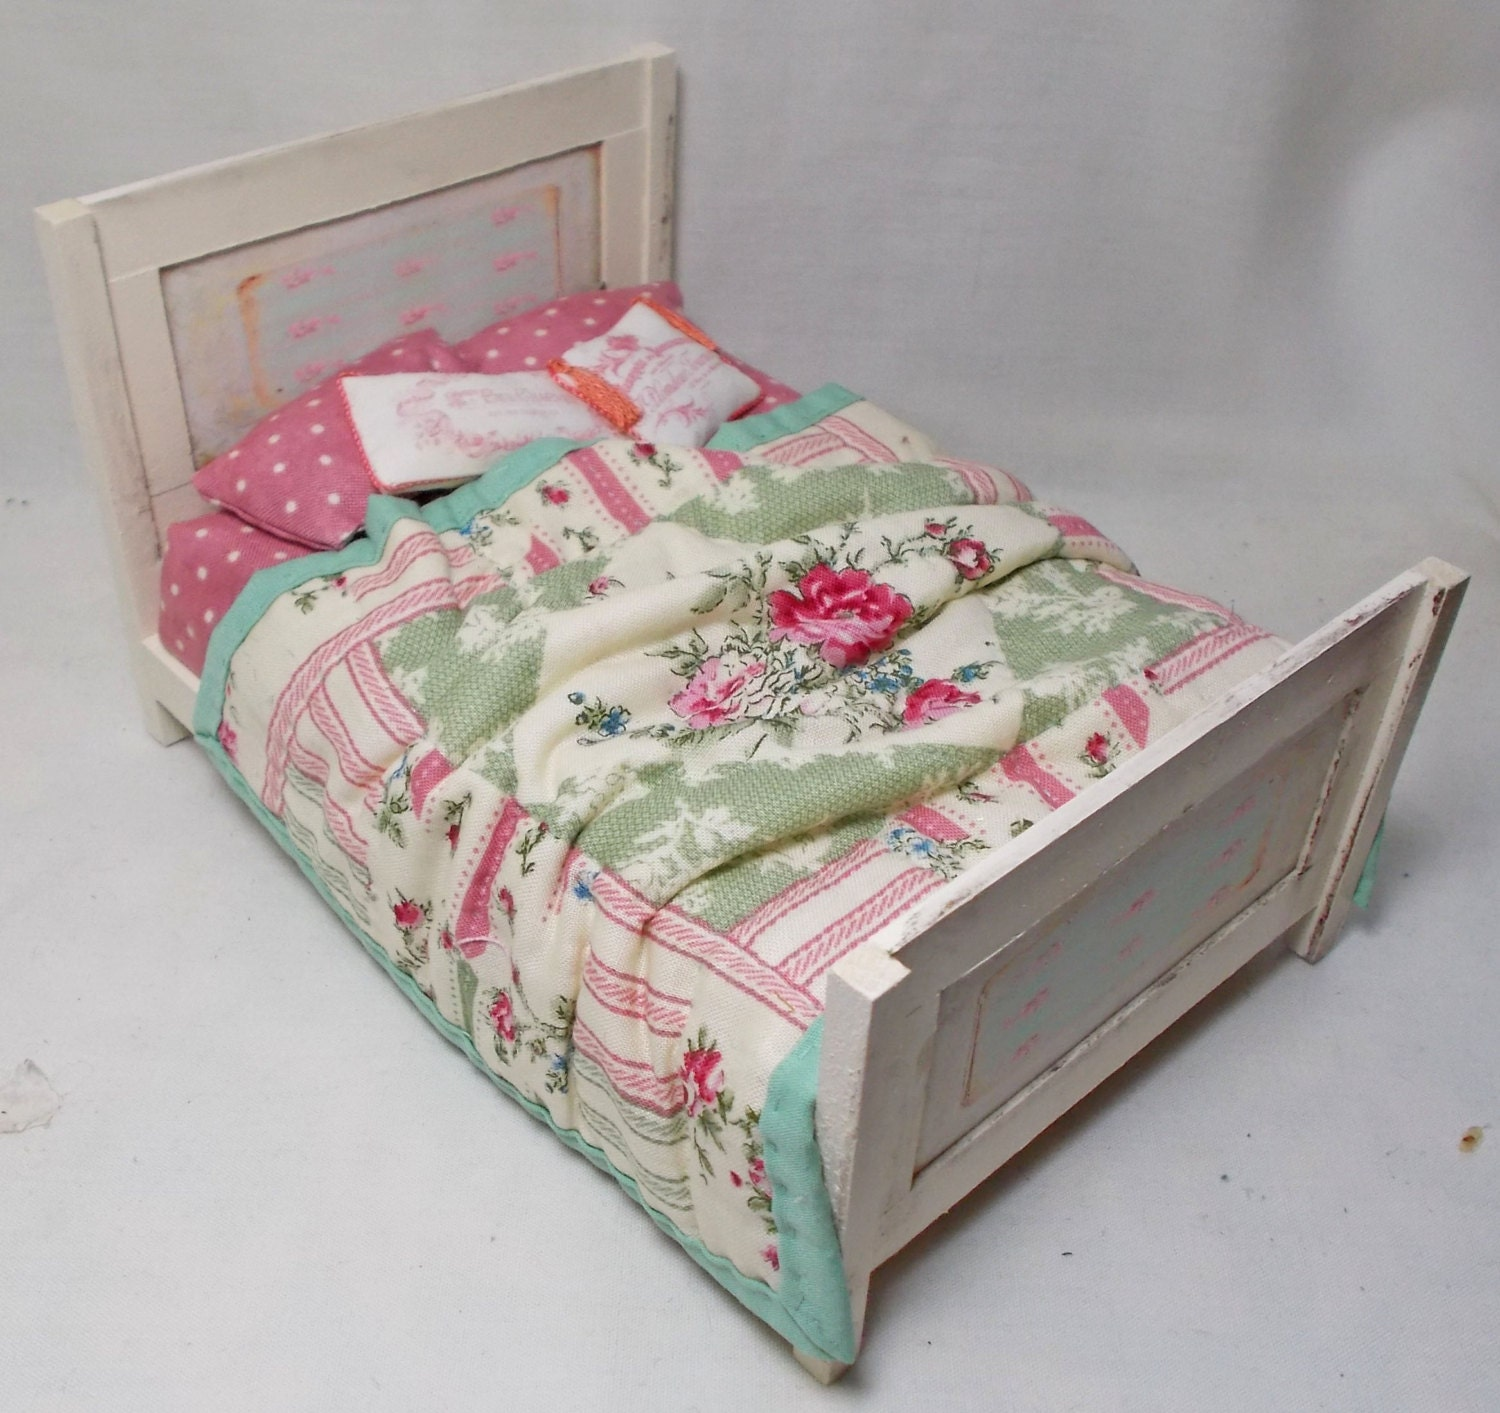 Dolls House Antique Cream Wooden Unmade Bed with Pink  Green quilt.